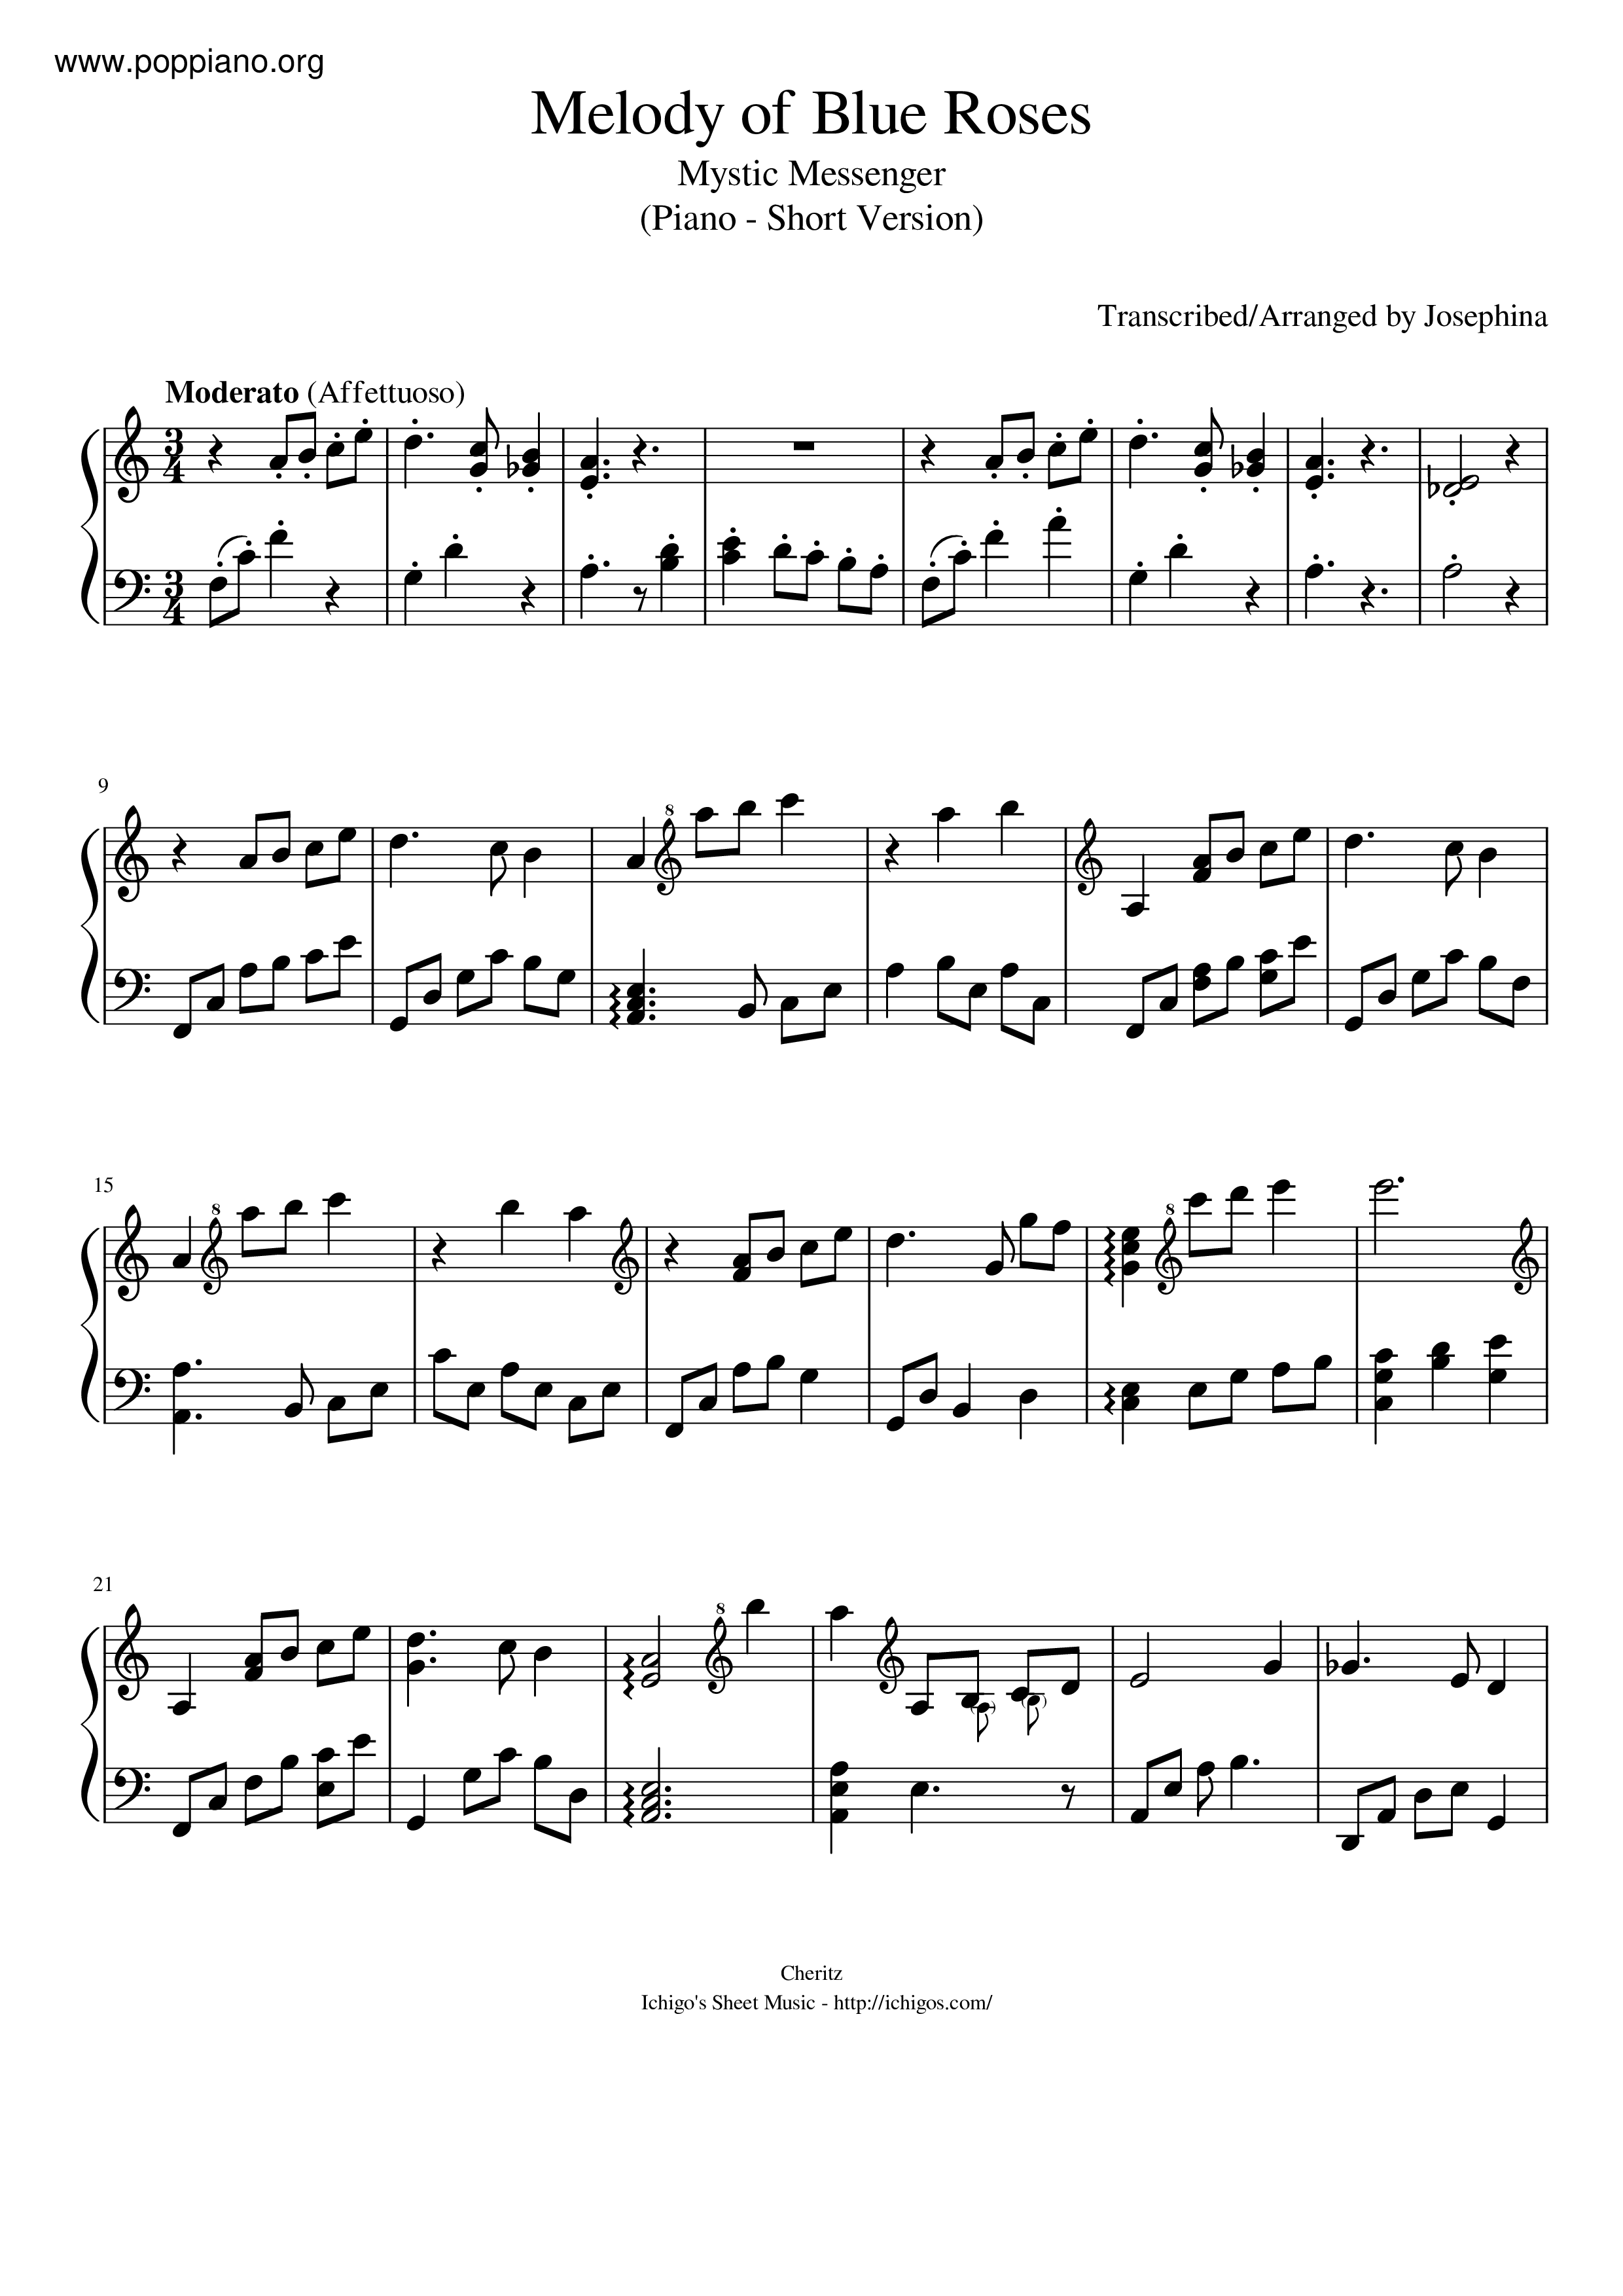 ☆ mystic messenger-melody of blue roses sheet music pdf, - free score  download ☆  www.poppiano.org